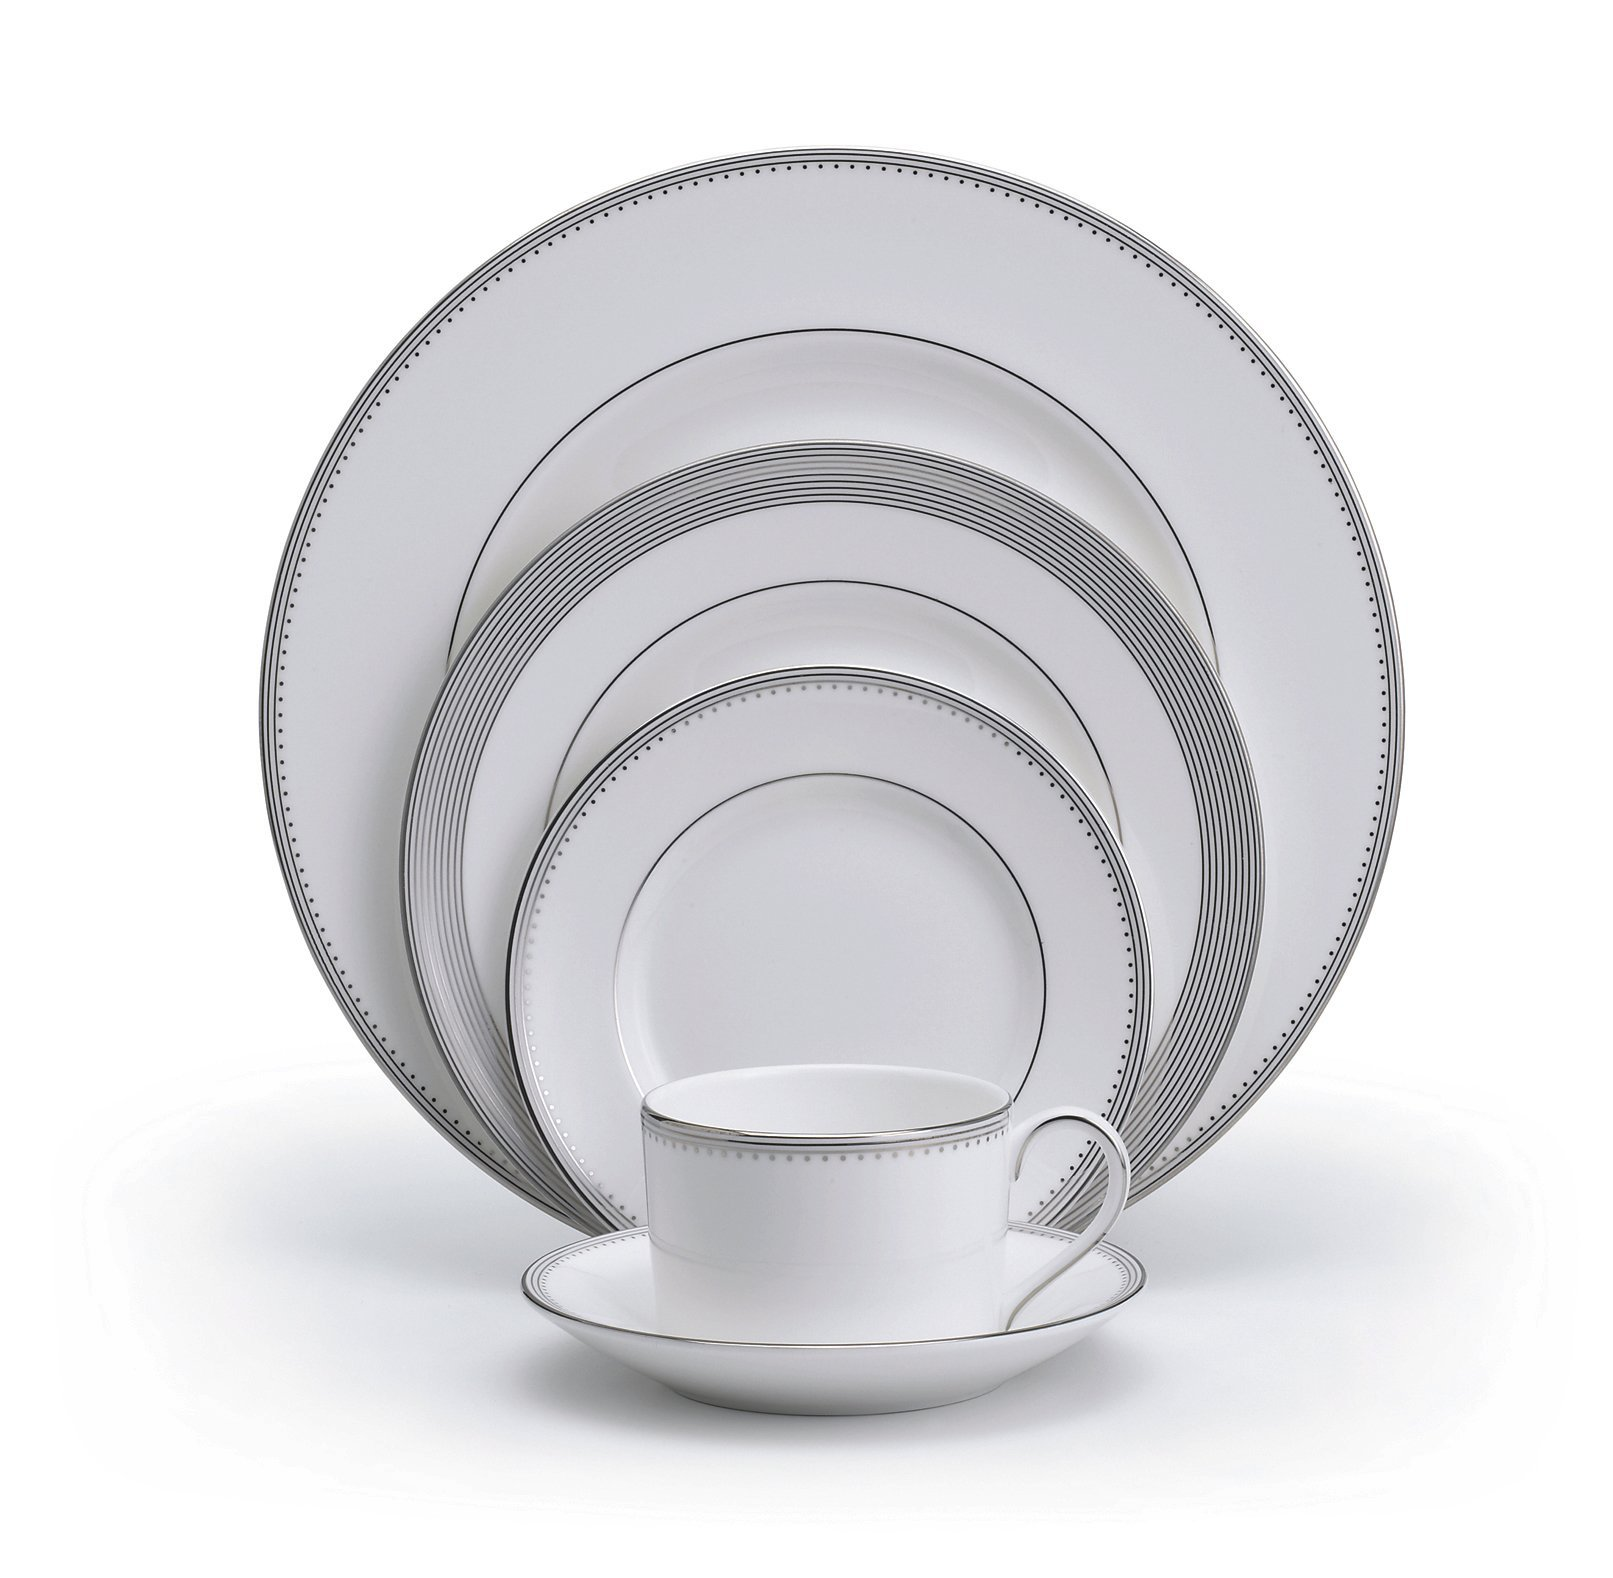 Vera Wang Wedgwood Grosgrain 5-Piece Place Setting, Service for 1